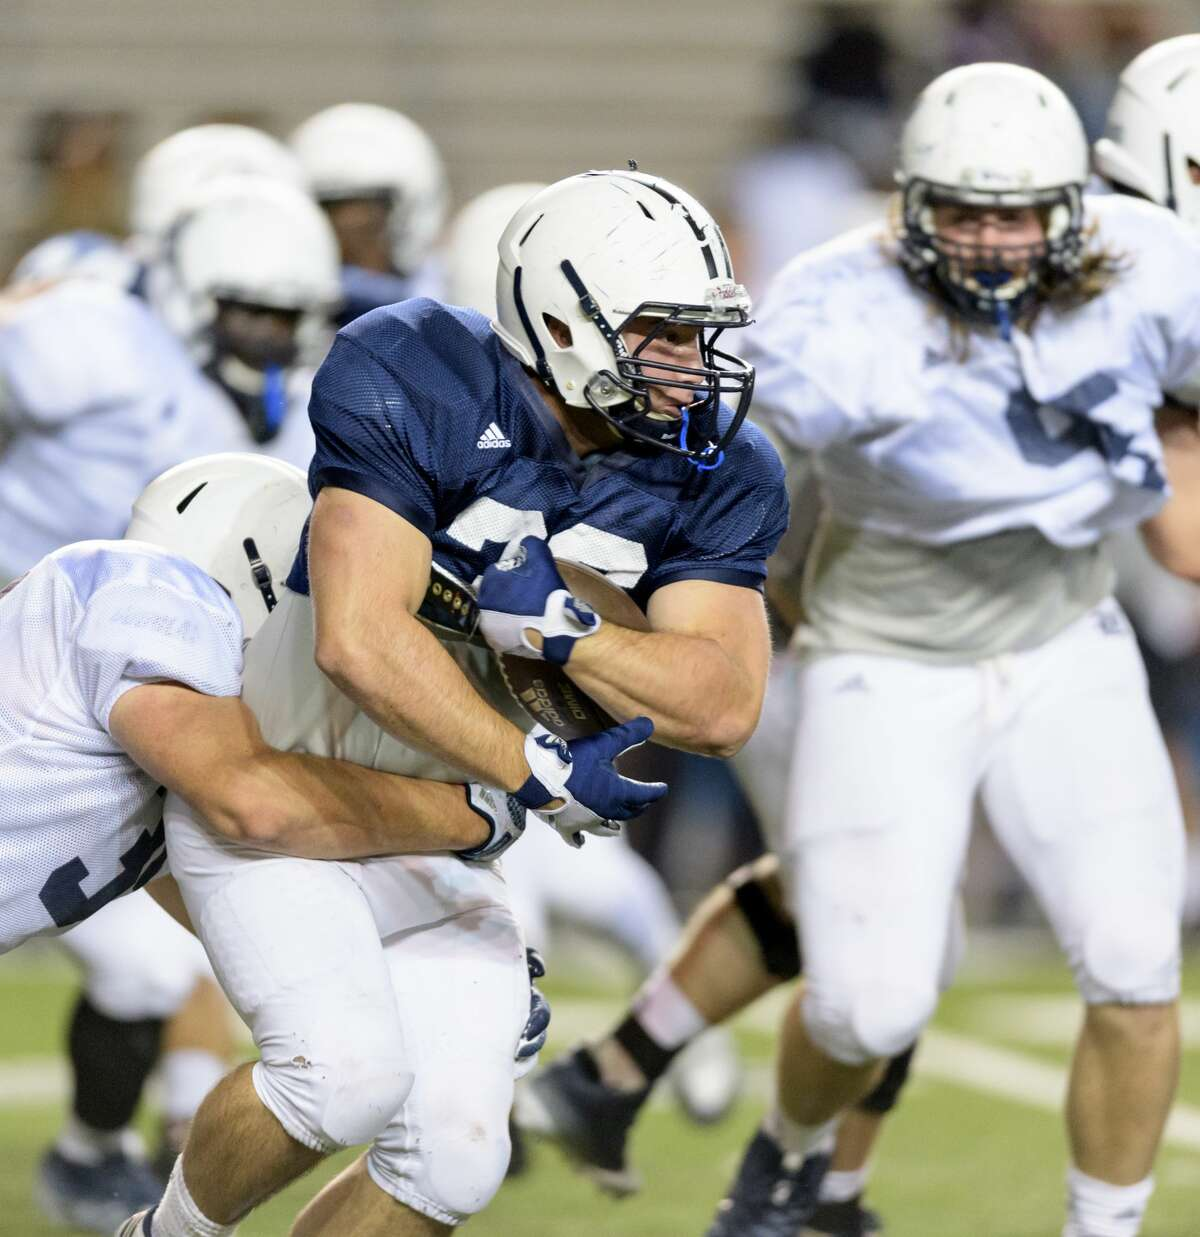 Paine Matiscik (36) of the Rice Owls runs the ball up the middle in the second half in the Rice Owls Spring Football game on Friday, April 7, 2017 at Rice Stadium in Houston Texas.